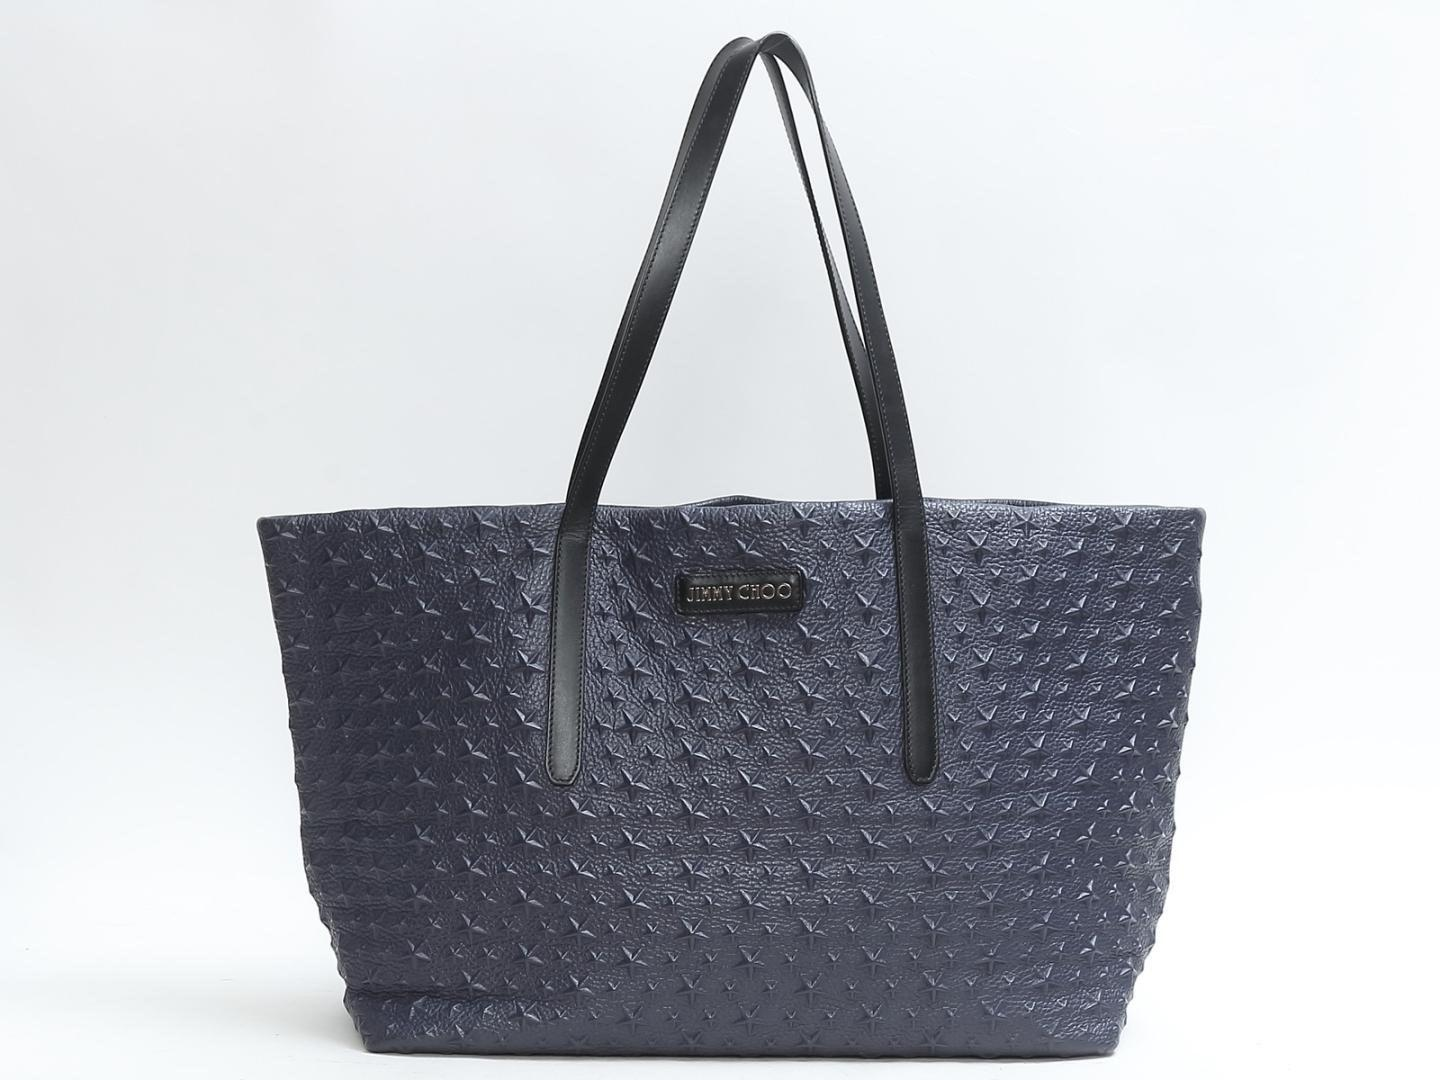 Jimmy Choo Women S Authentic Tote Bag Leather Blue Used Vintage